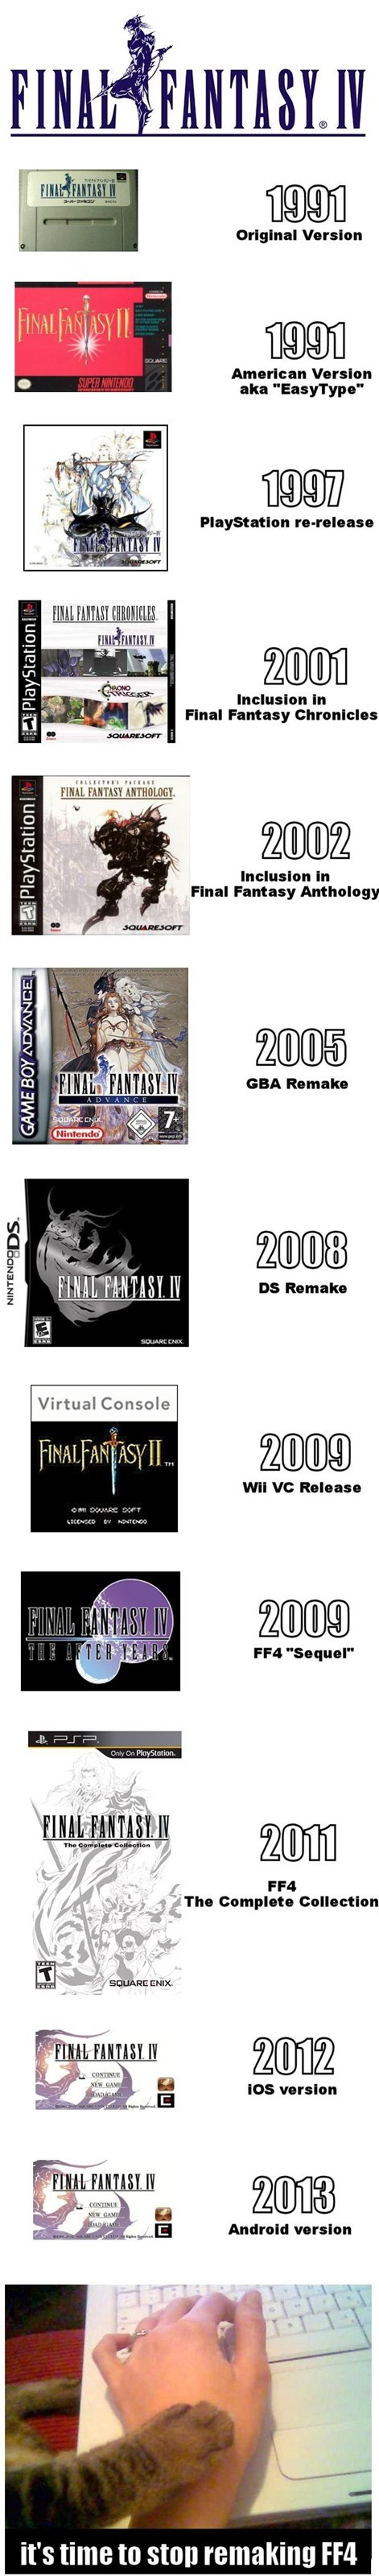 final fantasy,stahp,square enix,Final Fantasy IV